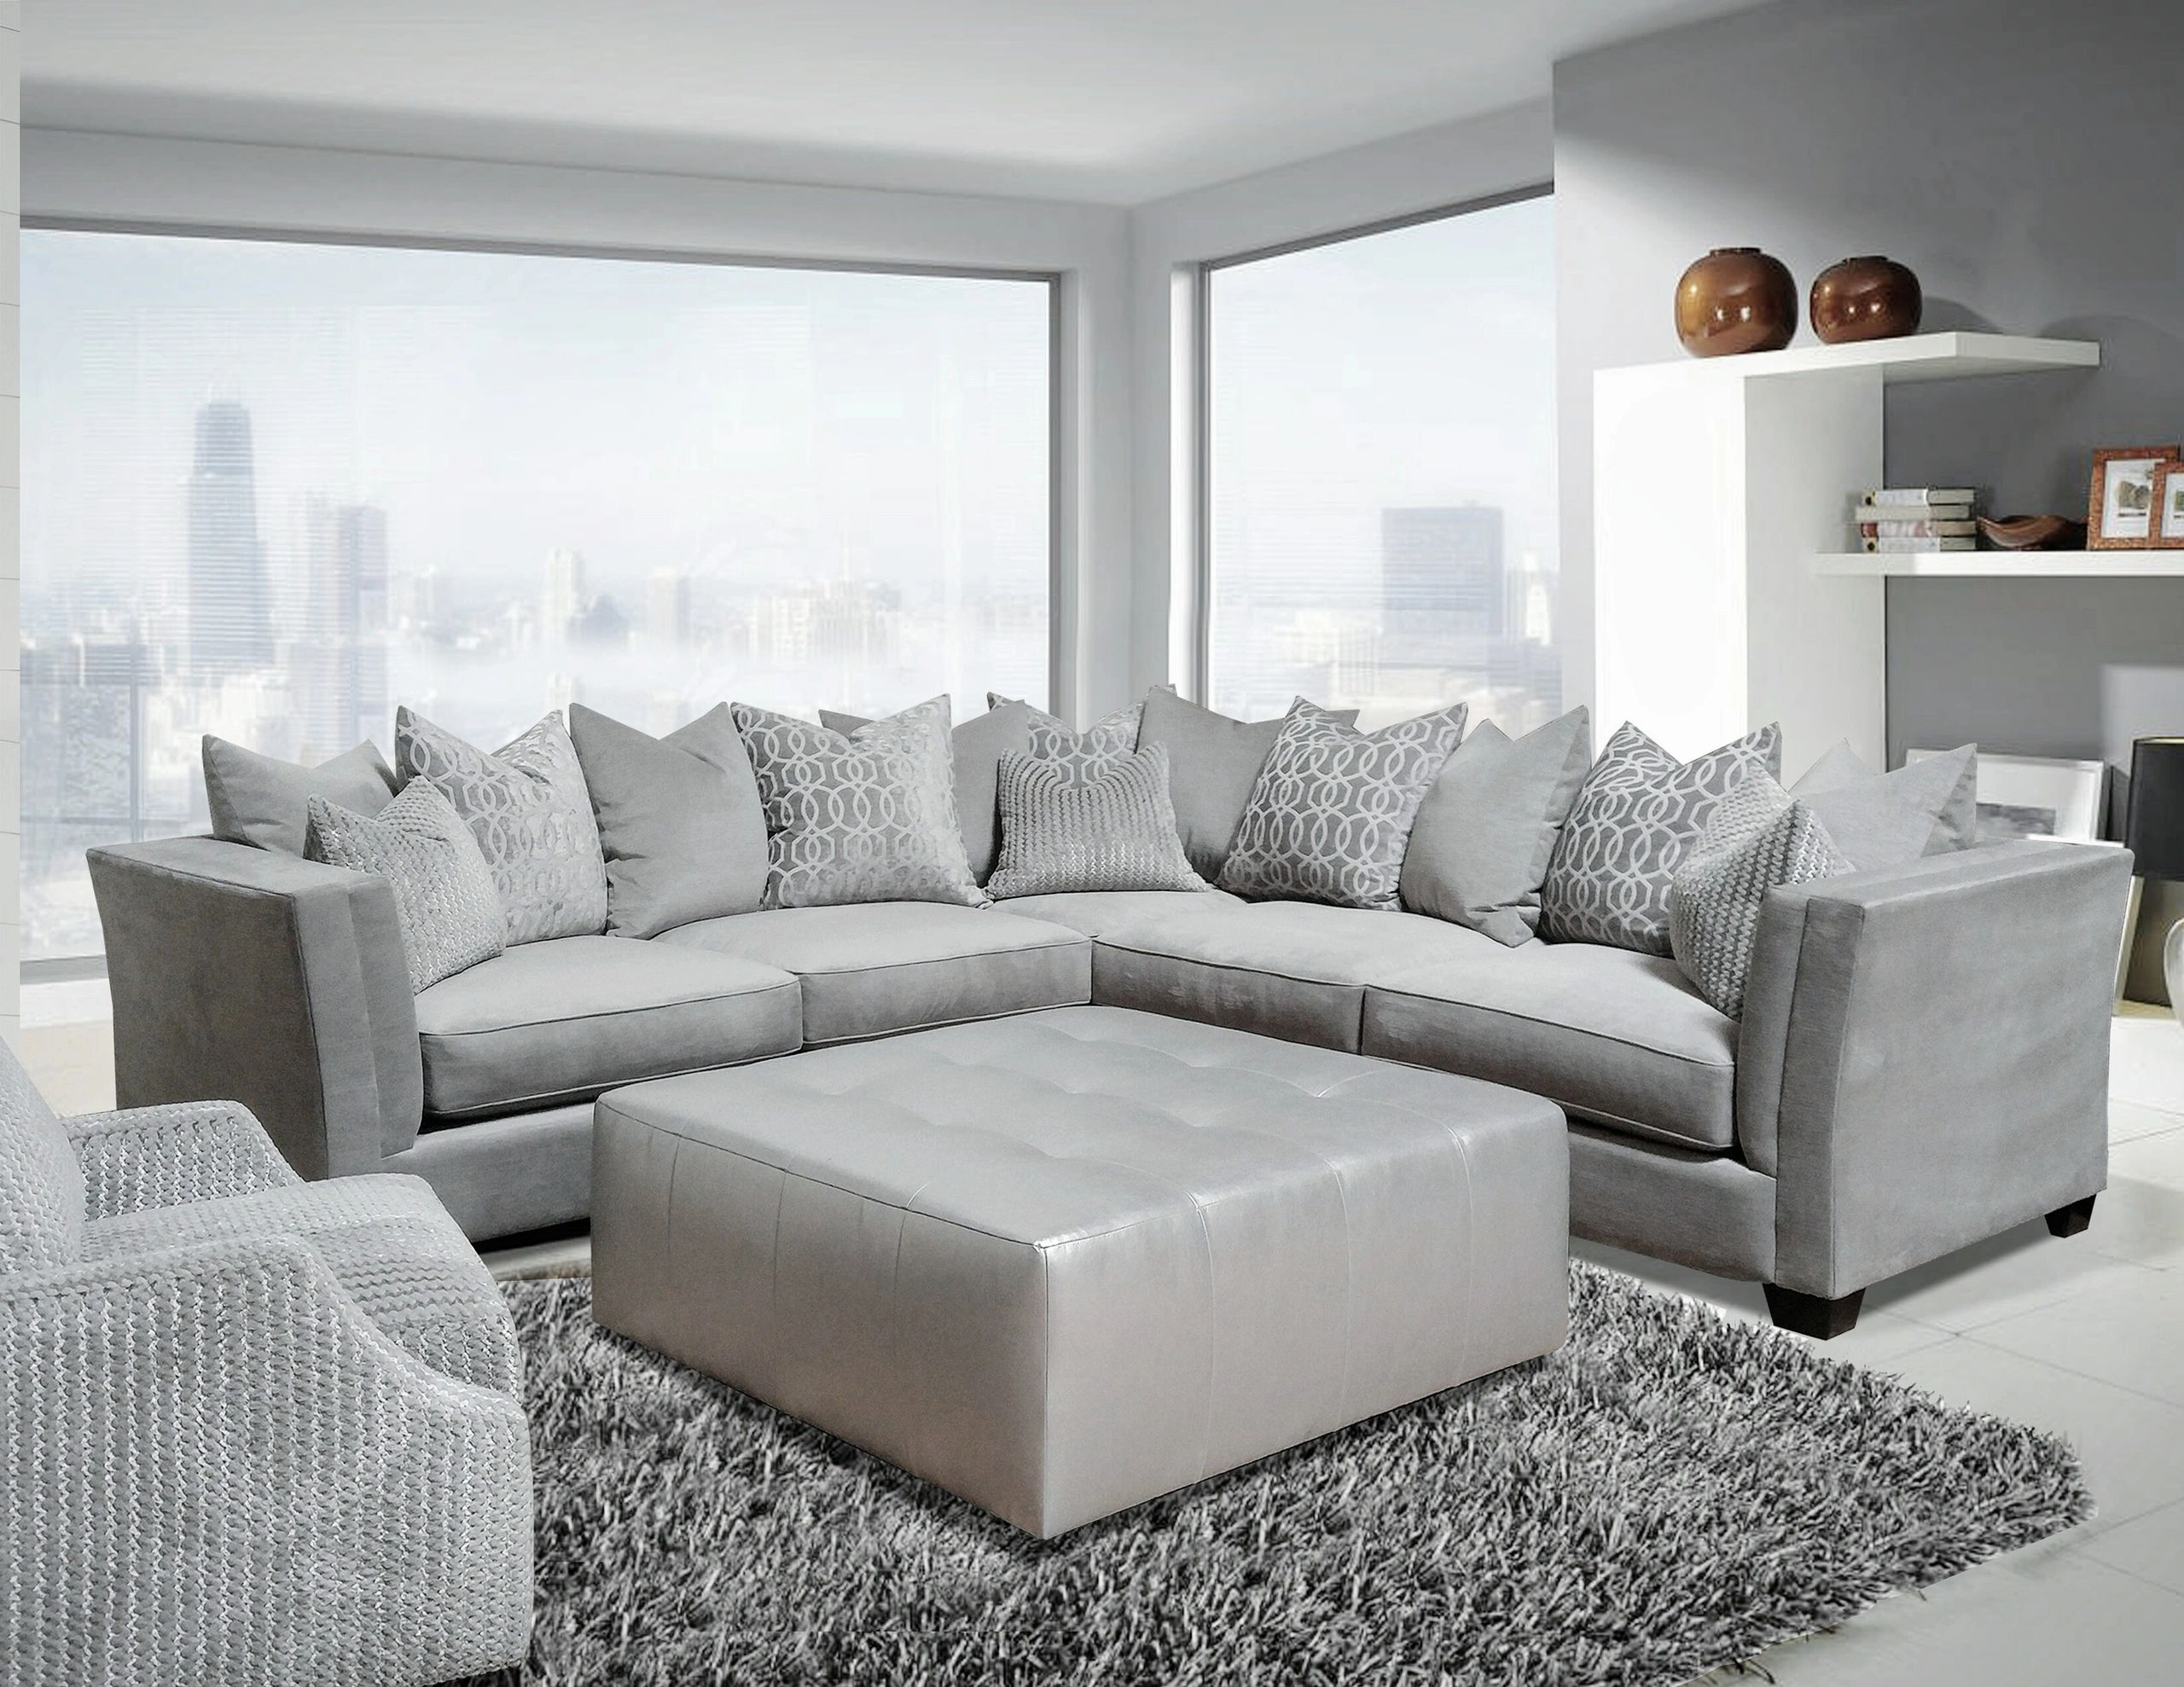 Furniture Couches Sectionals Sofas John Michael Designs Llc